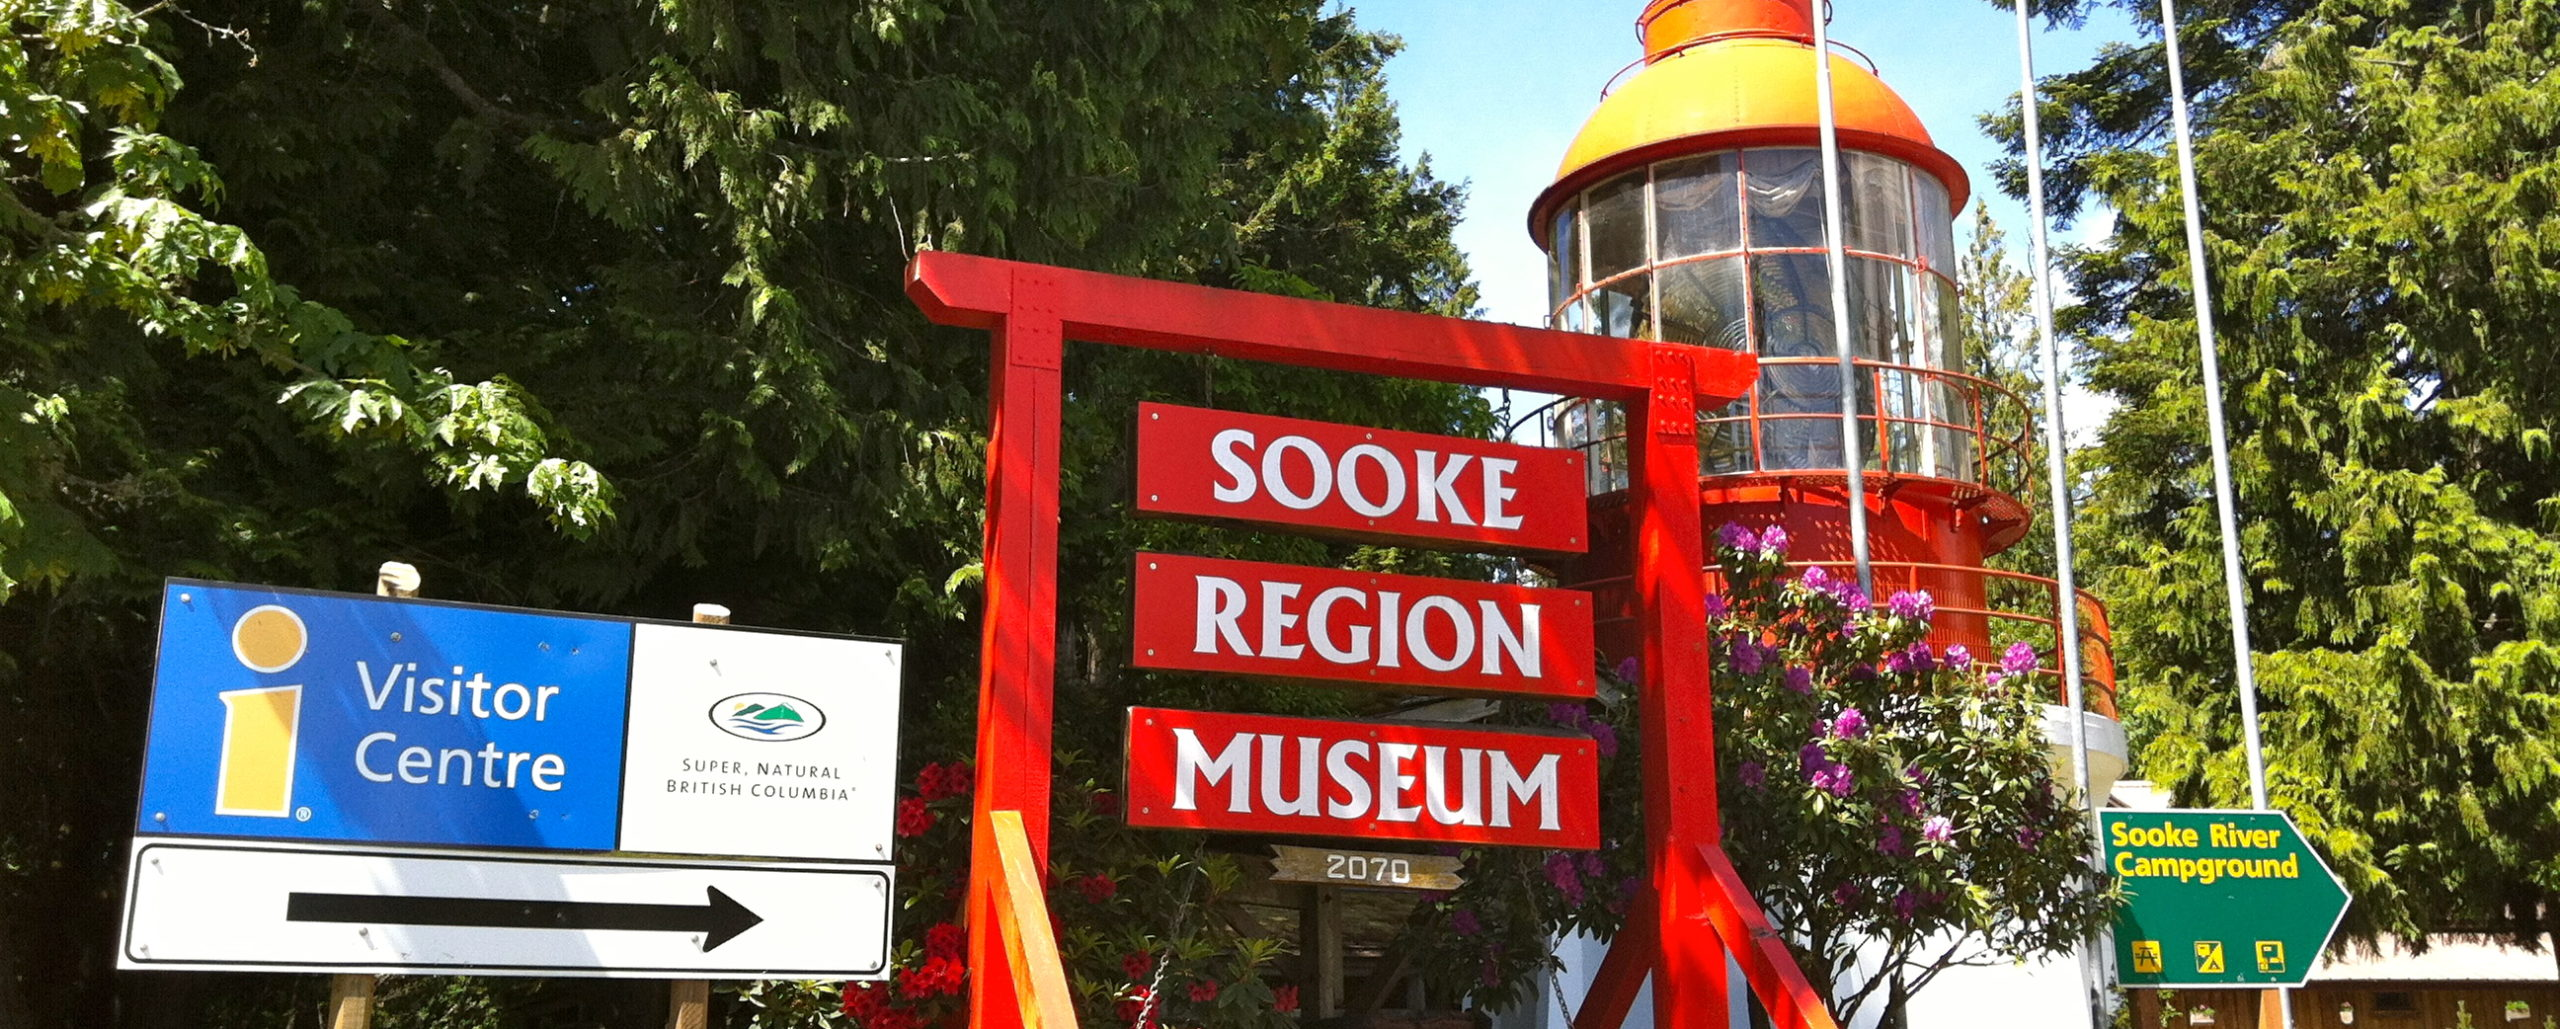 Sooke Museum & Visitor Centre